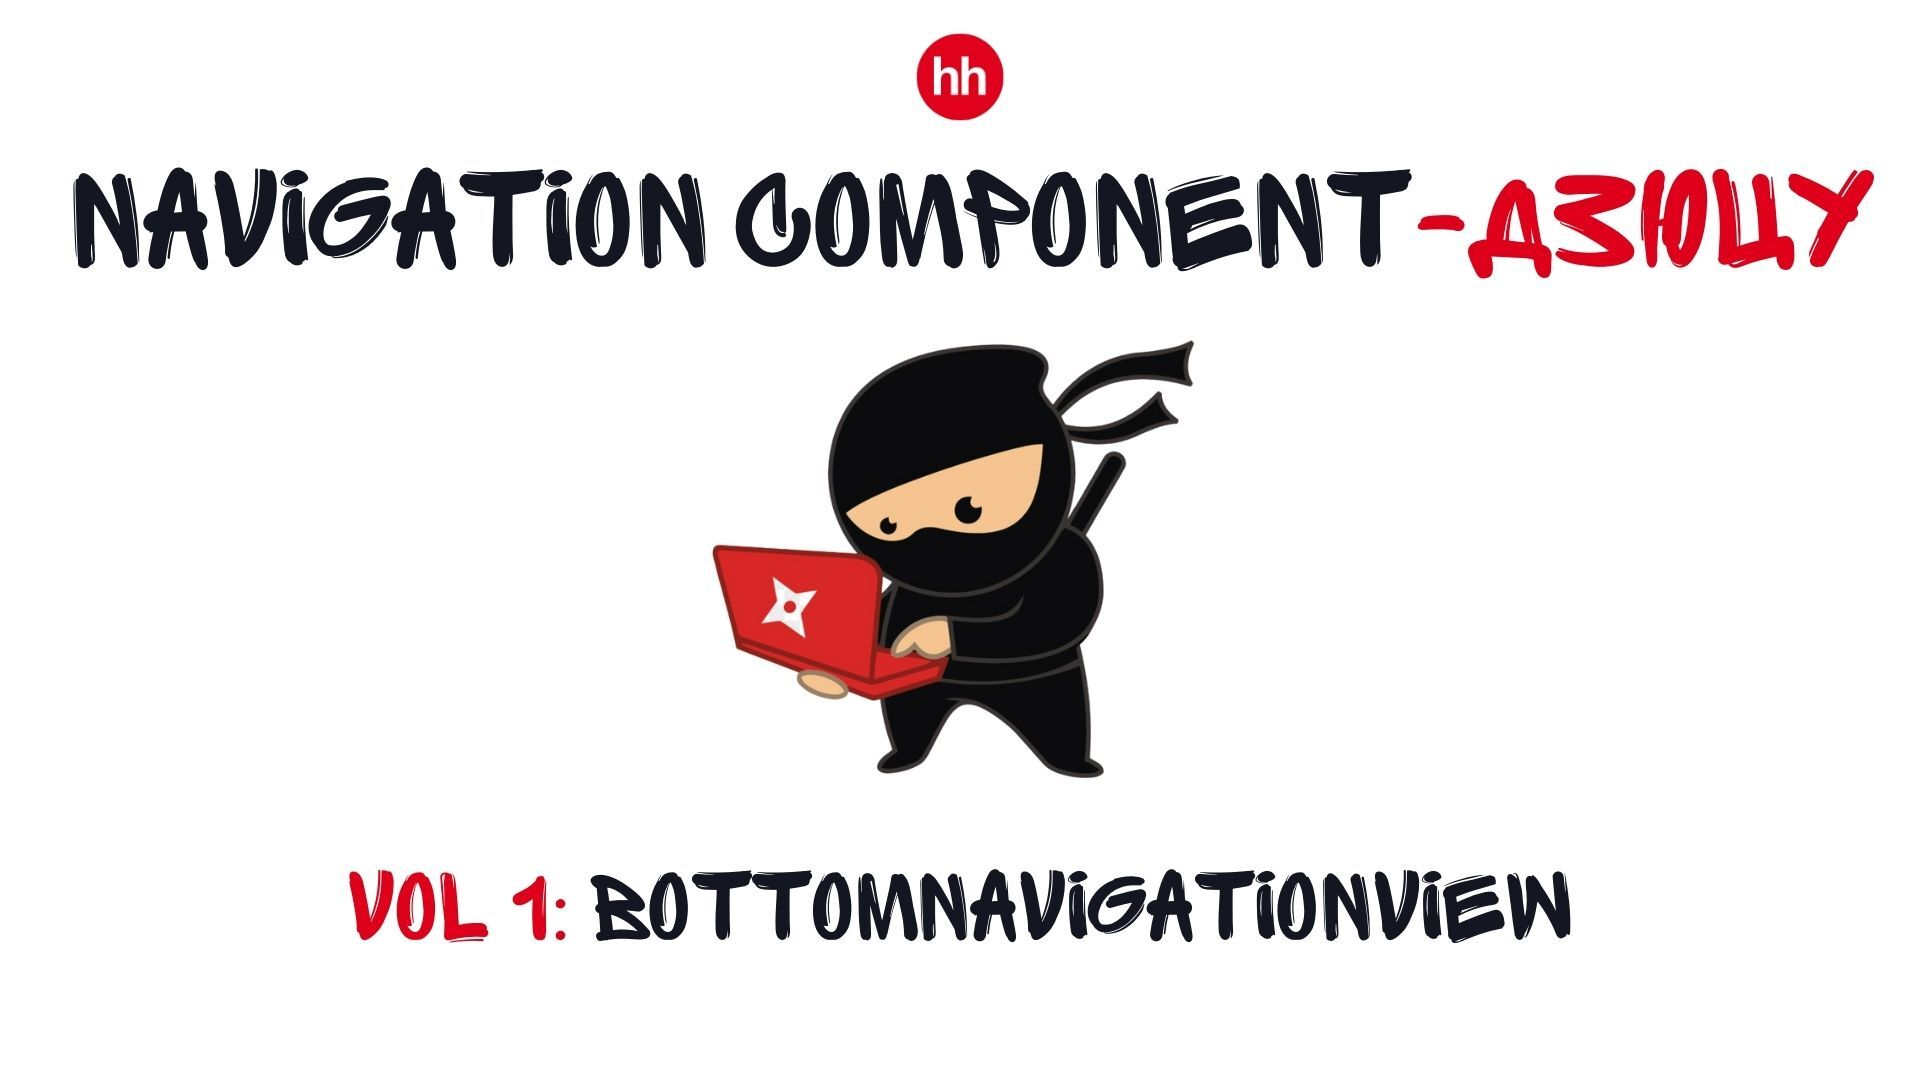 Navigation Component-дзюцу, vol. 1  BottomNavigationView